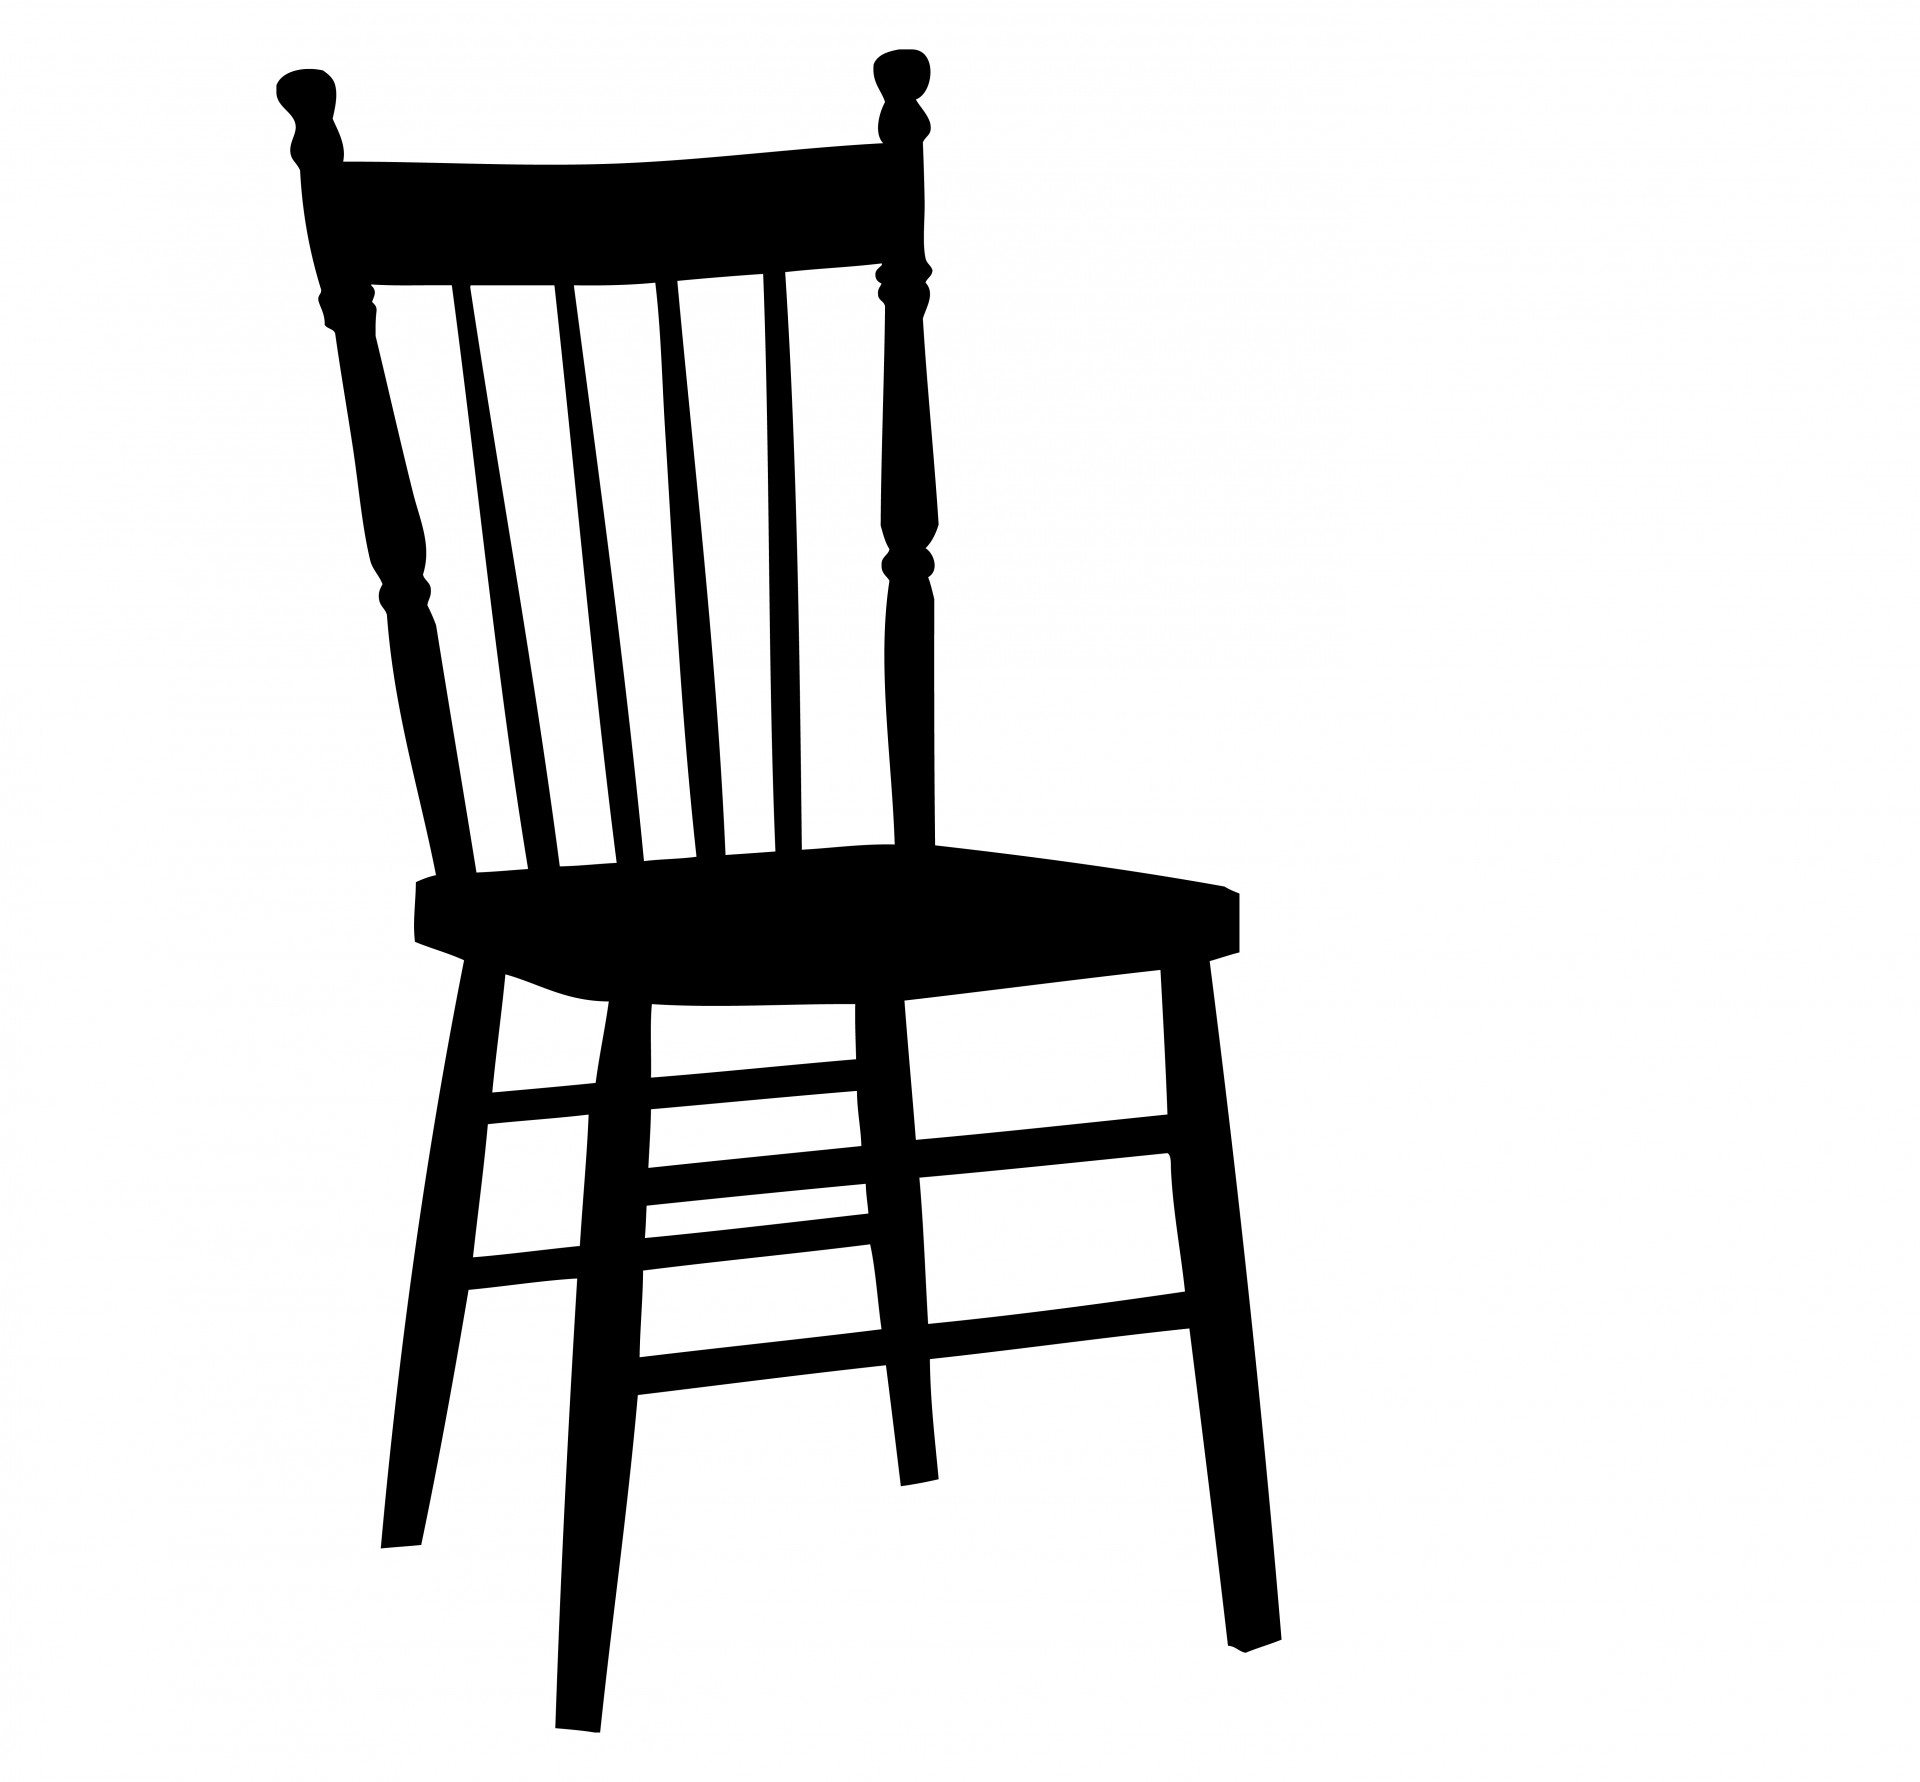 Chair clipart #8, Download drawings